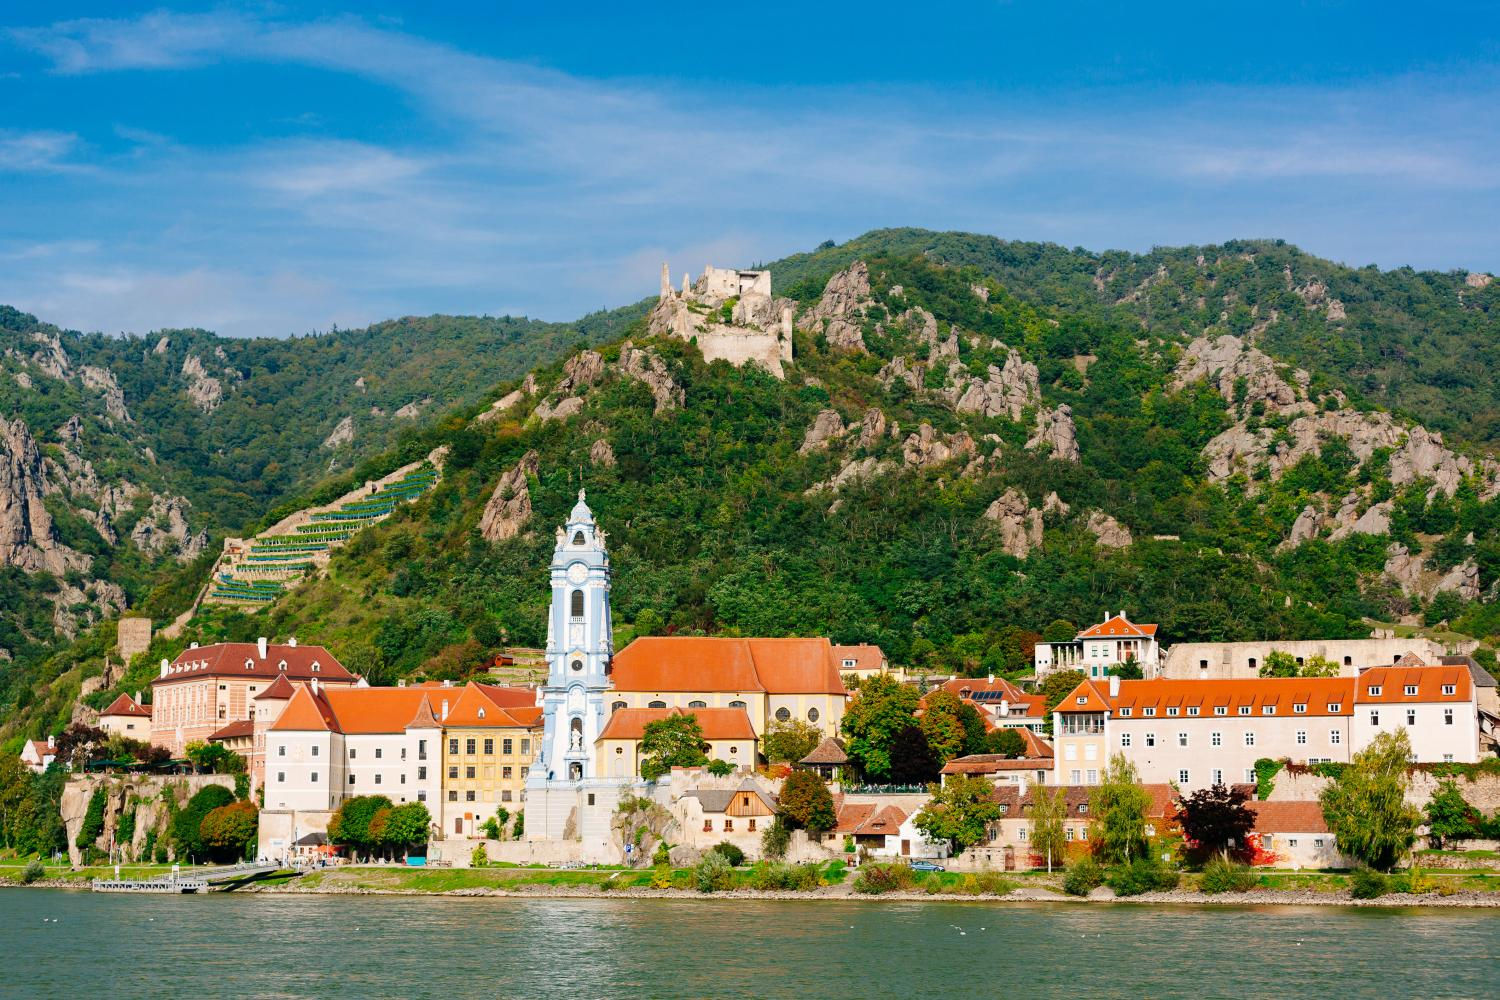 Day Trip to Danube Valley with Boat Ride